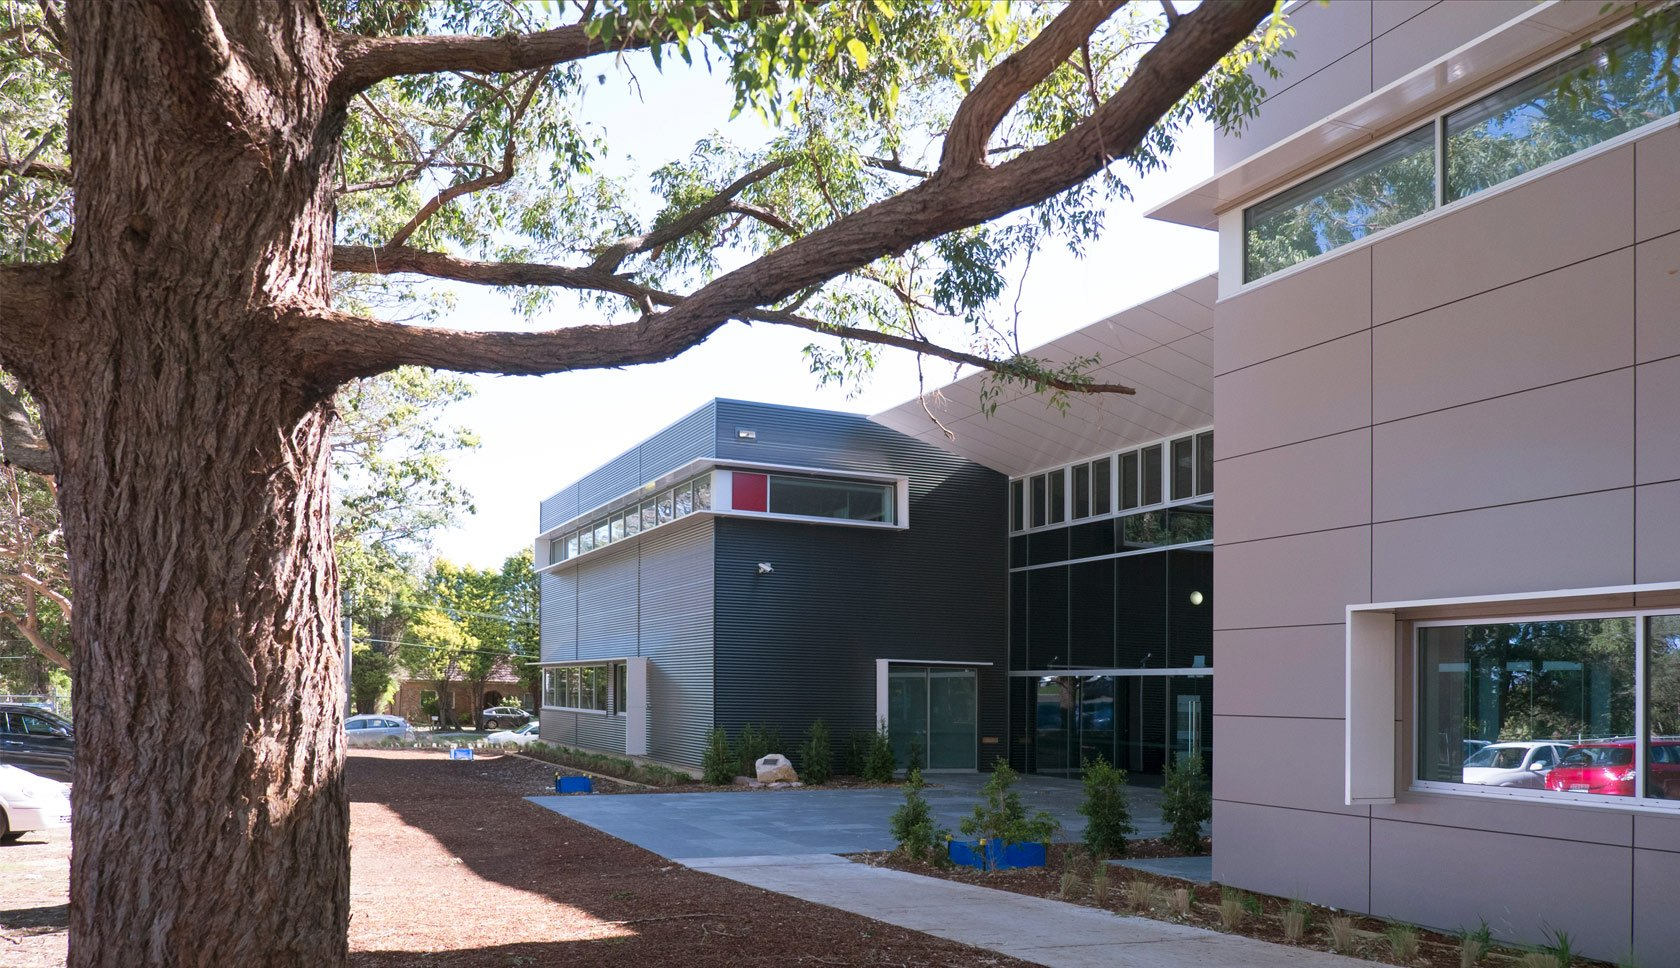 Project Image Sydney Adventist hospital clinical education centre